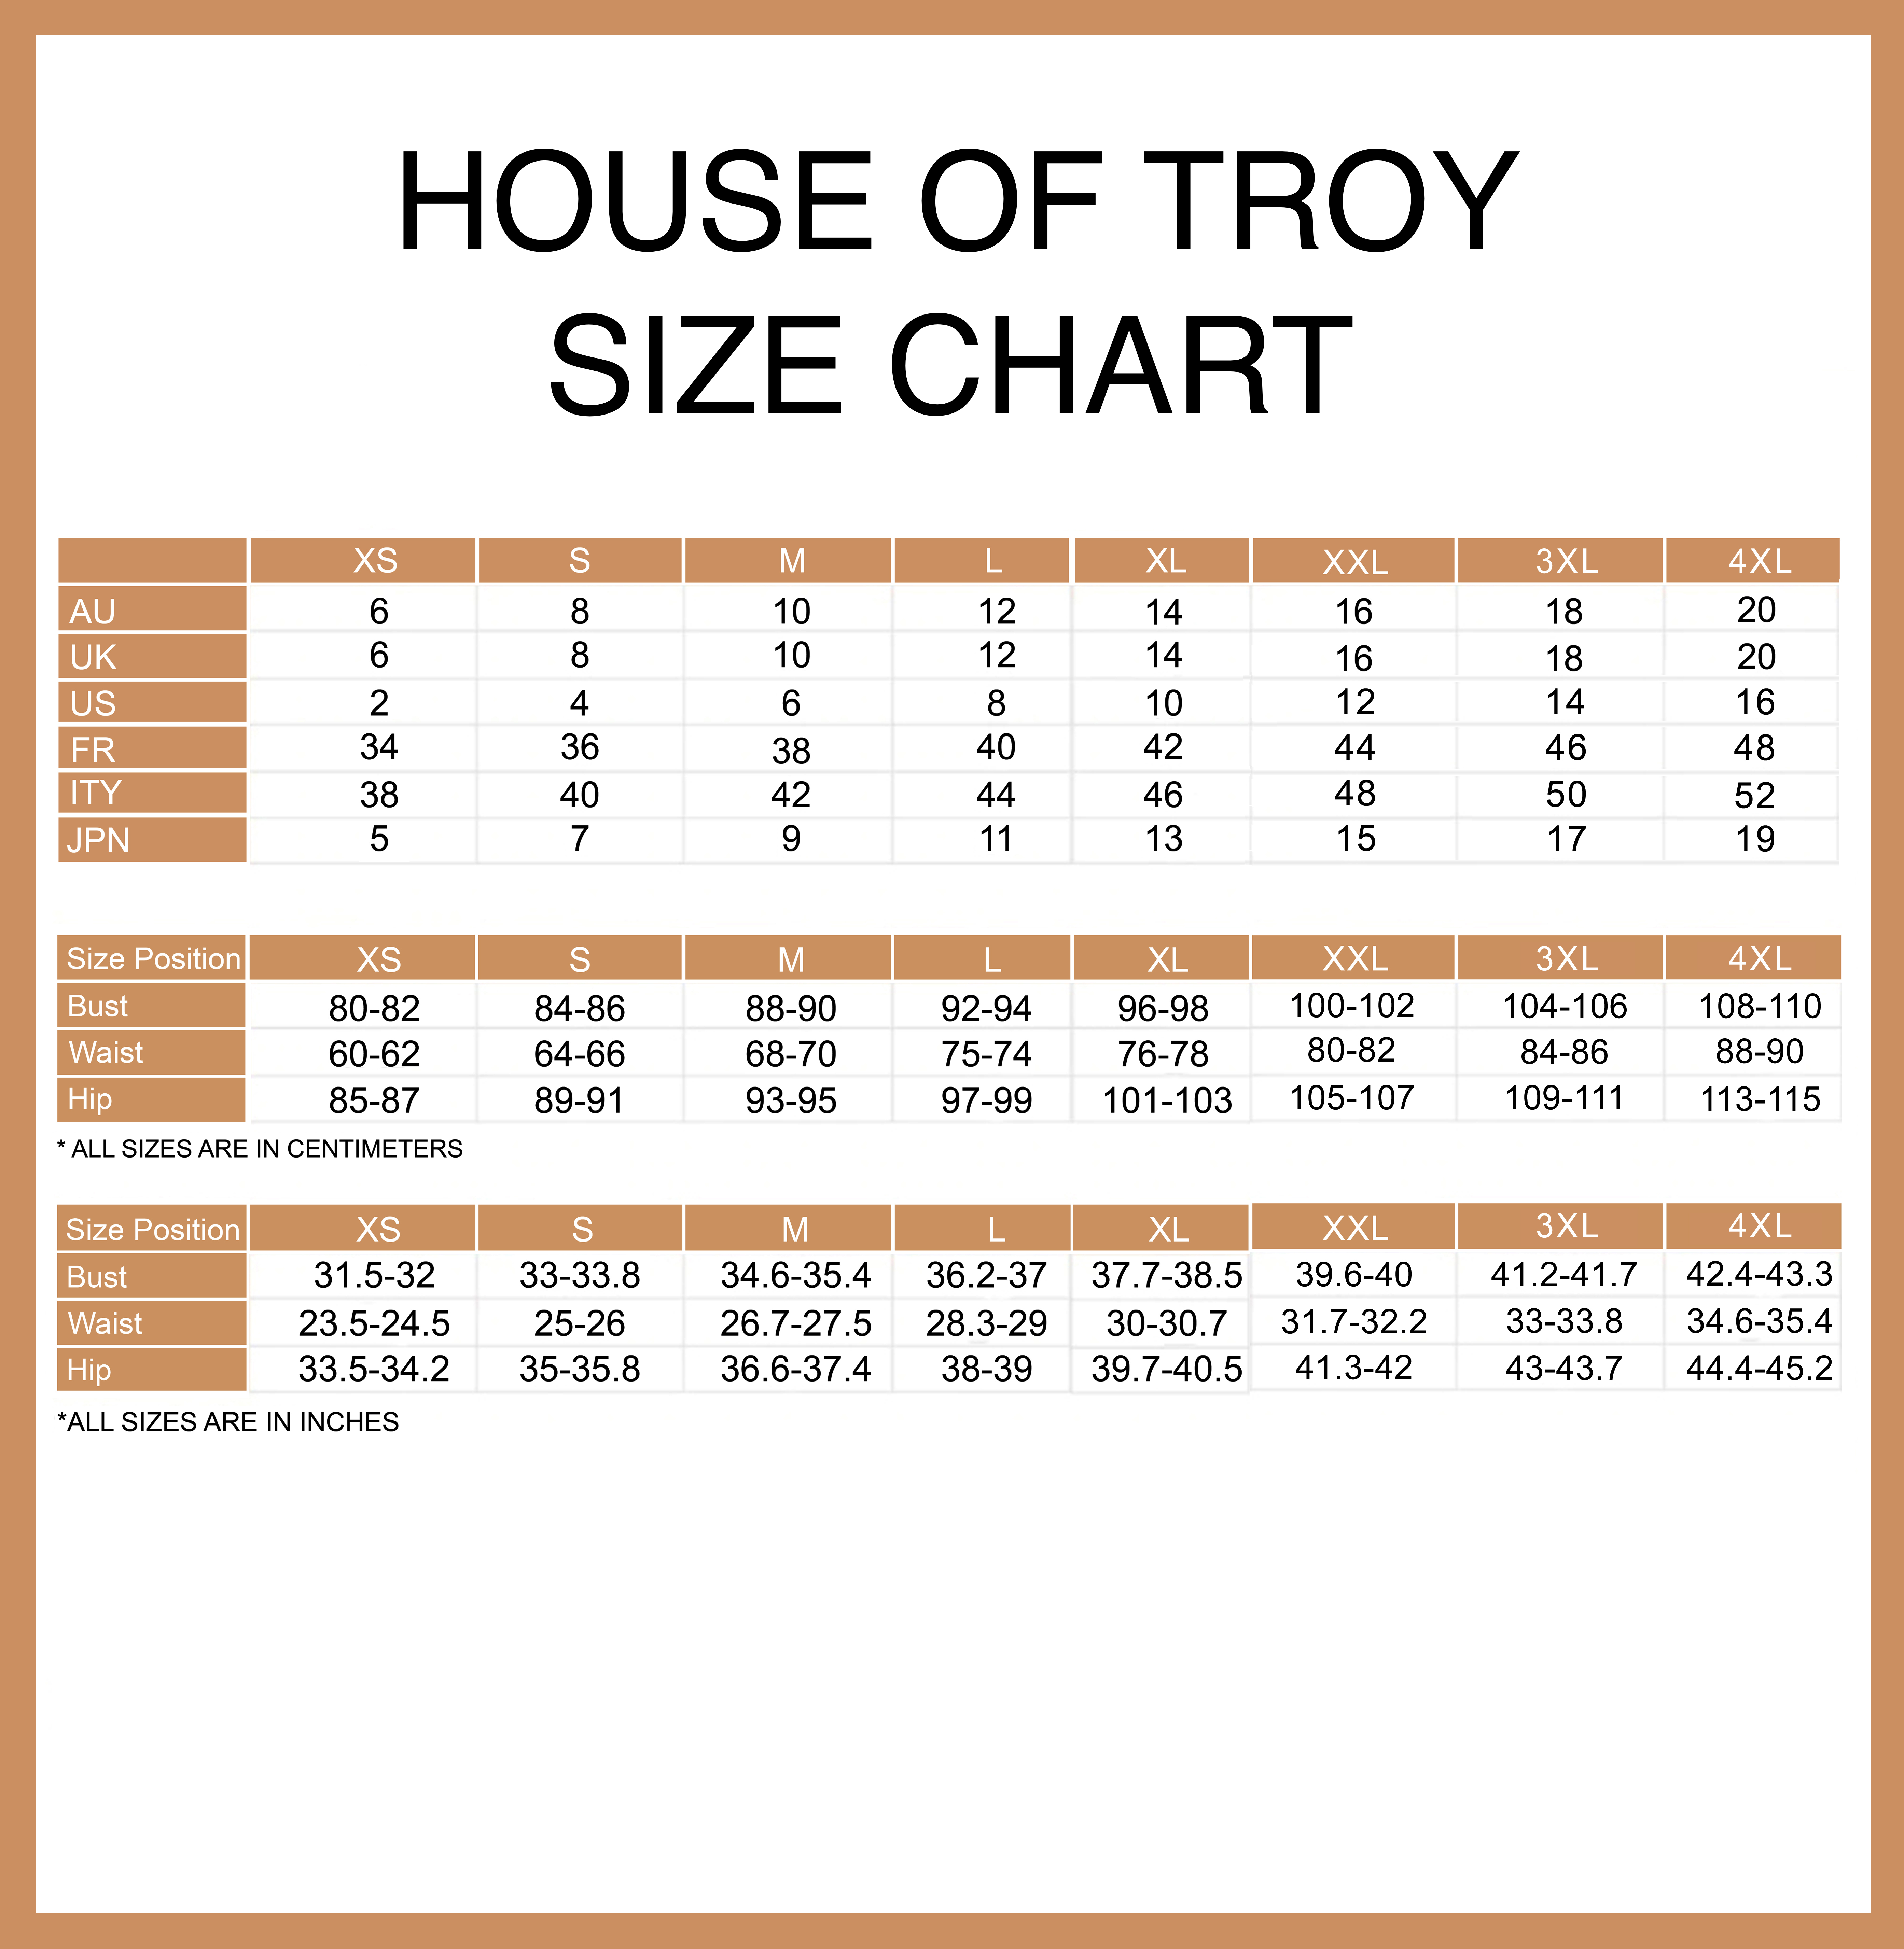 house-of-troy-size-chart.jpg